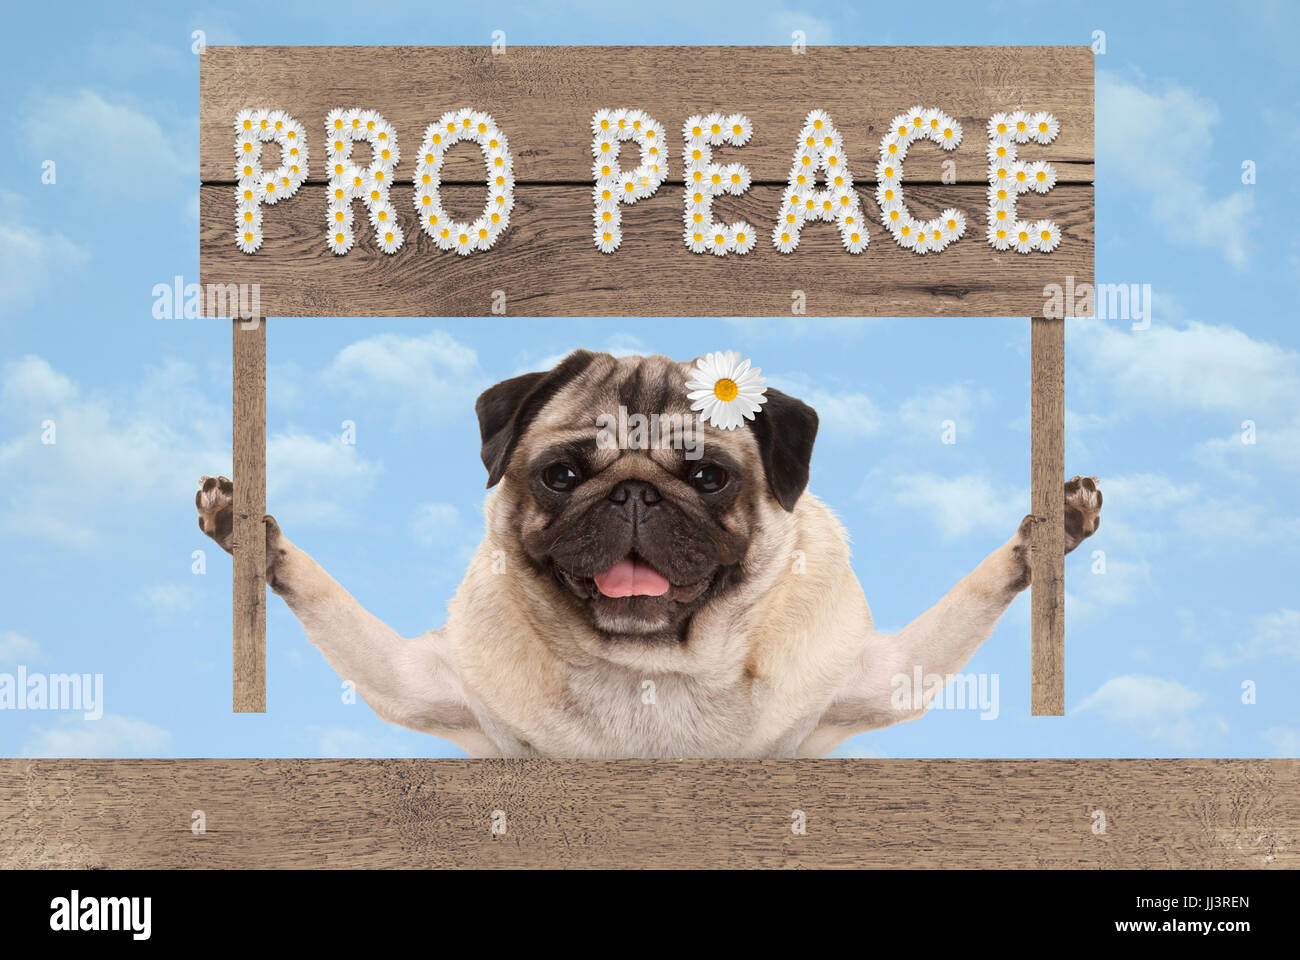 happy smiling pug puppy dog with wooden sign and text pro peace in white flowers on blue sky background - Stock Image